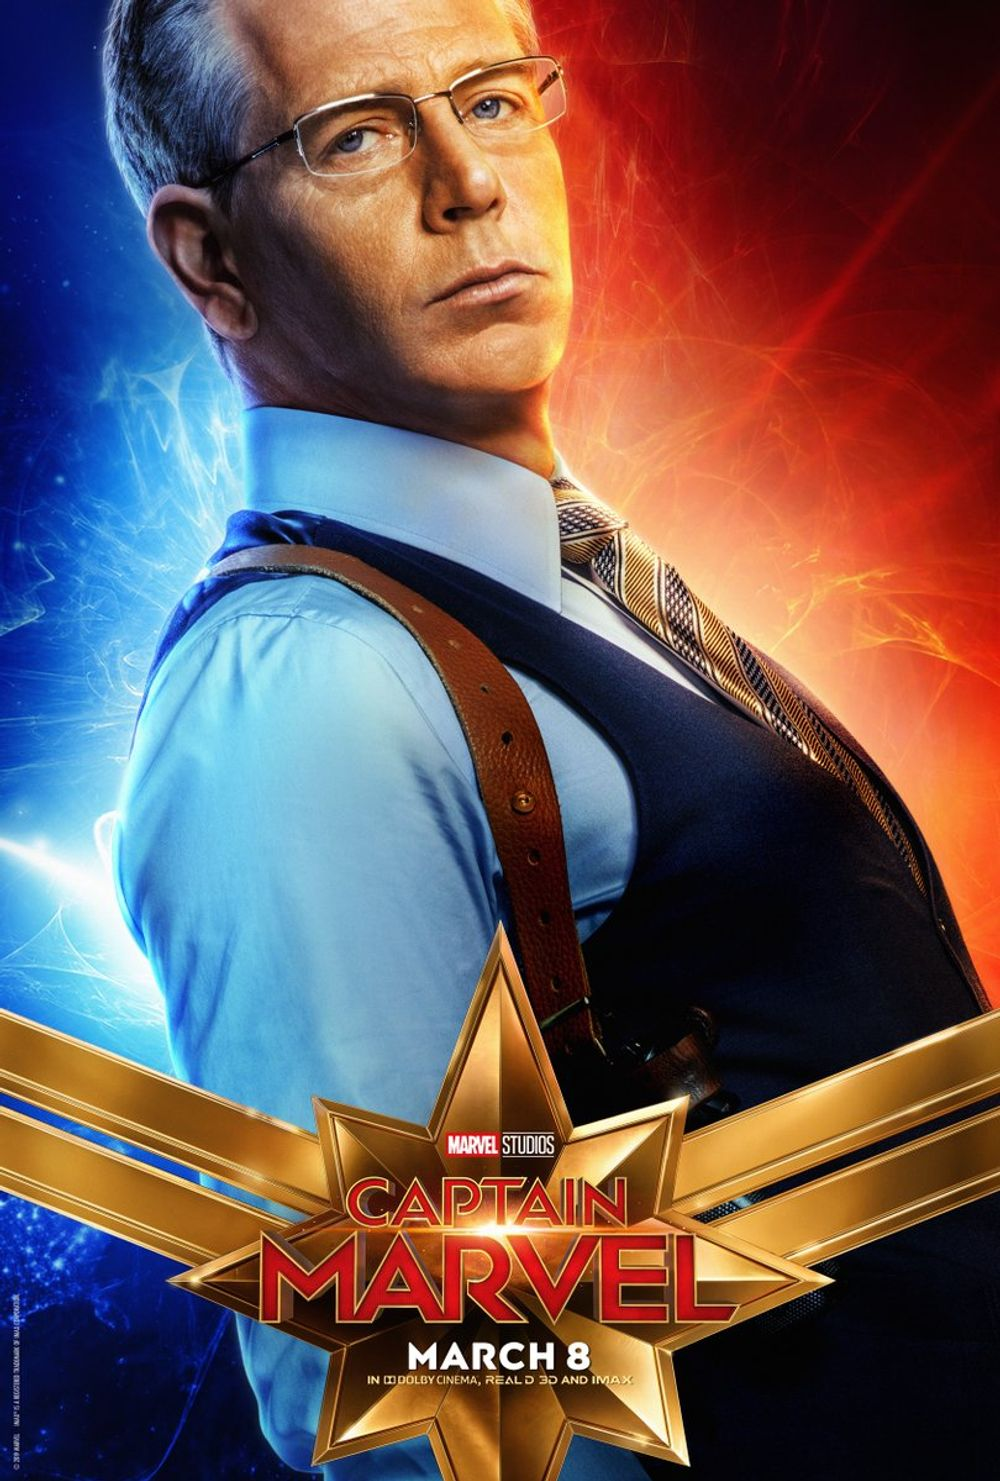 1-Captain Marvel